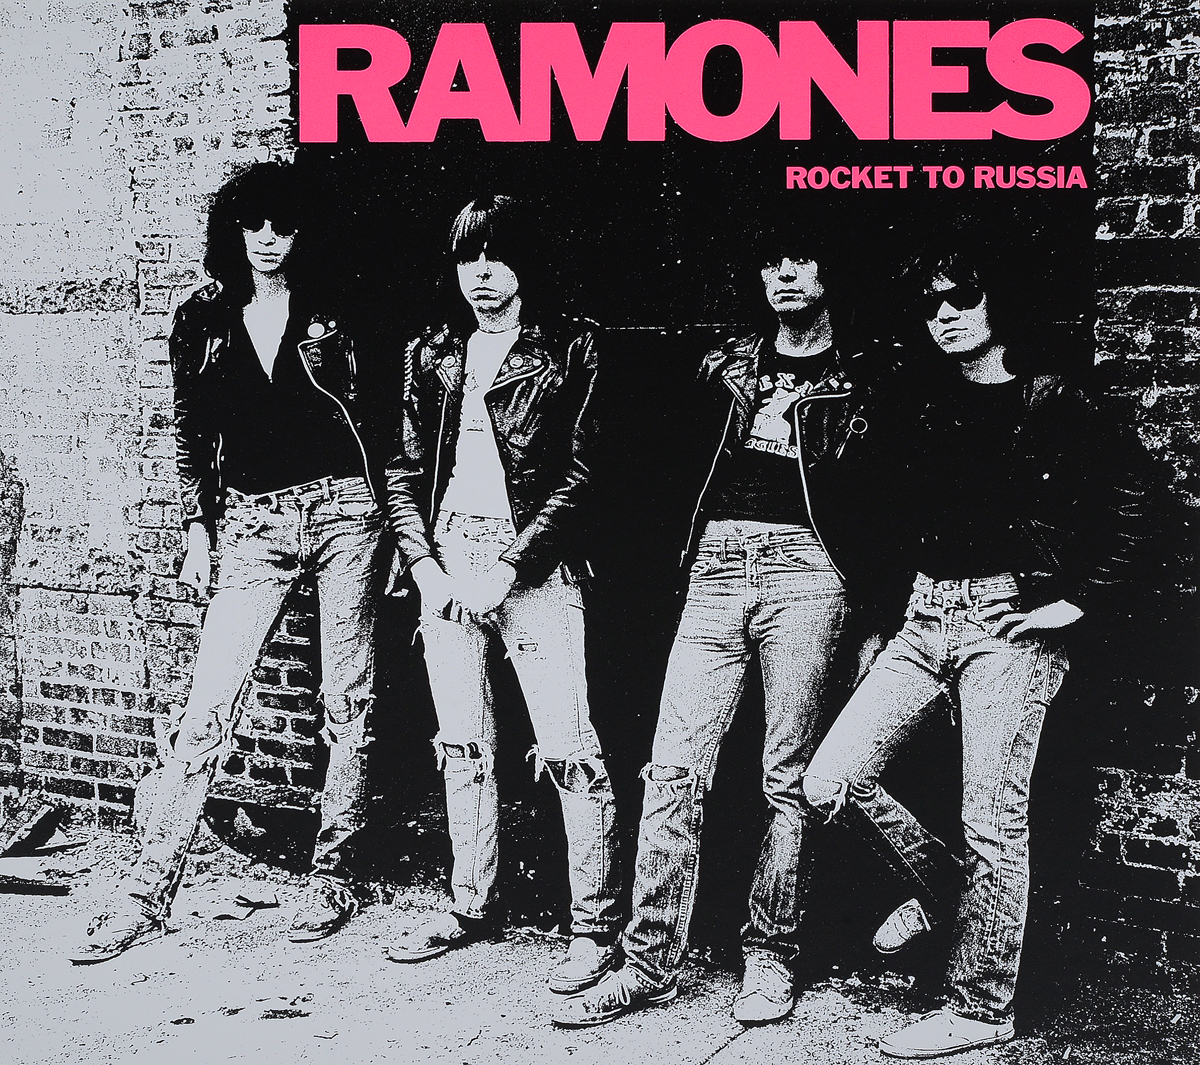 The Ramones Ramones. Rocket To Russia (40th Anniversary Deluxe Edition) (3 CD + LP) купить